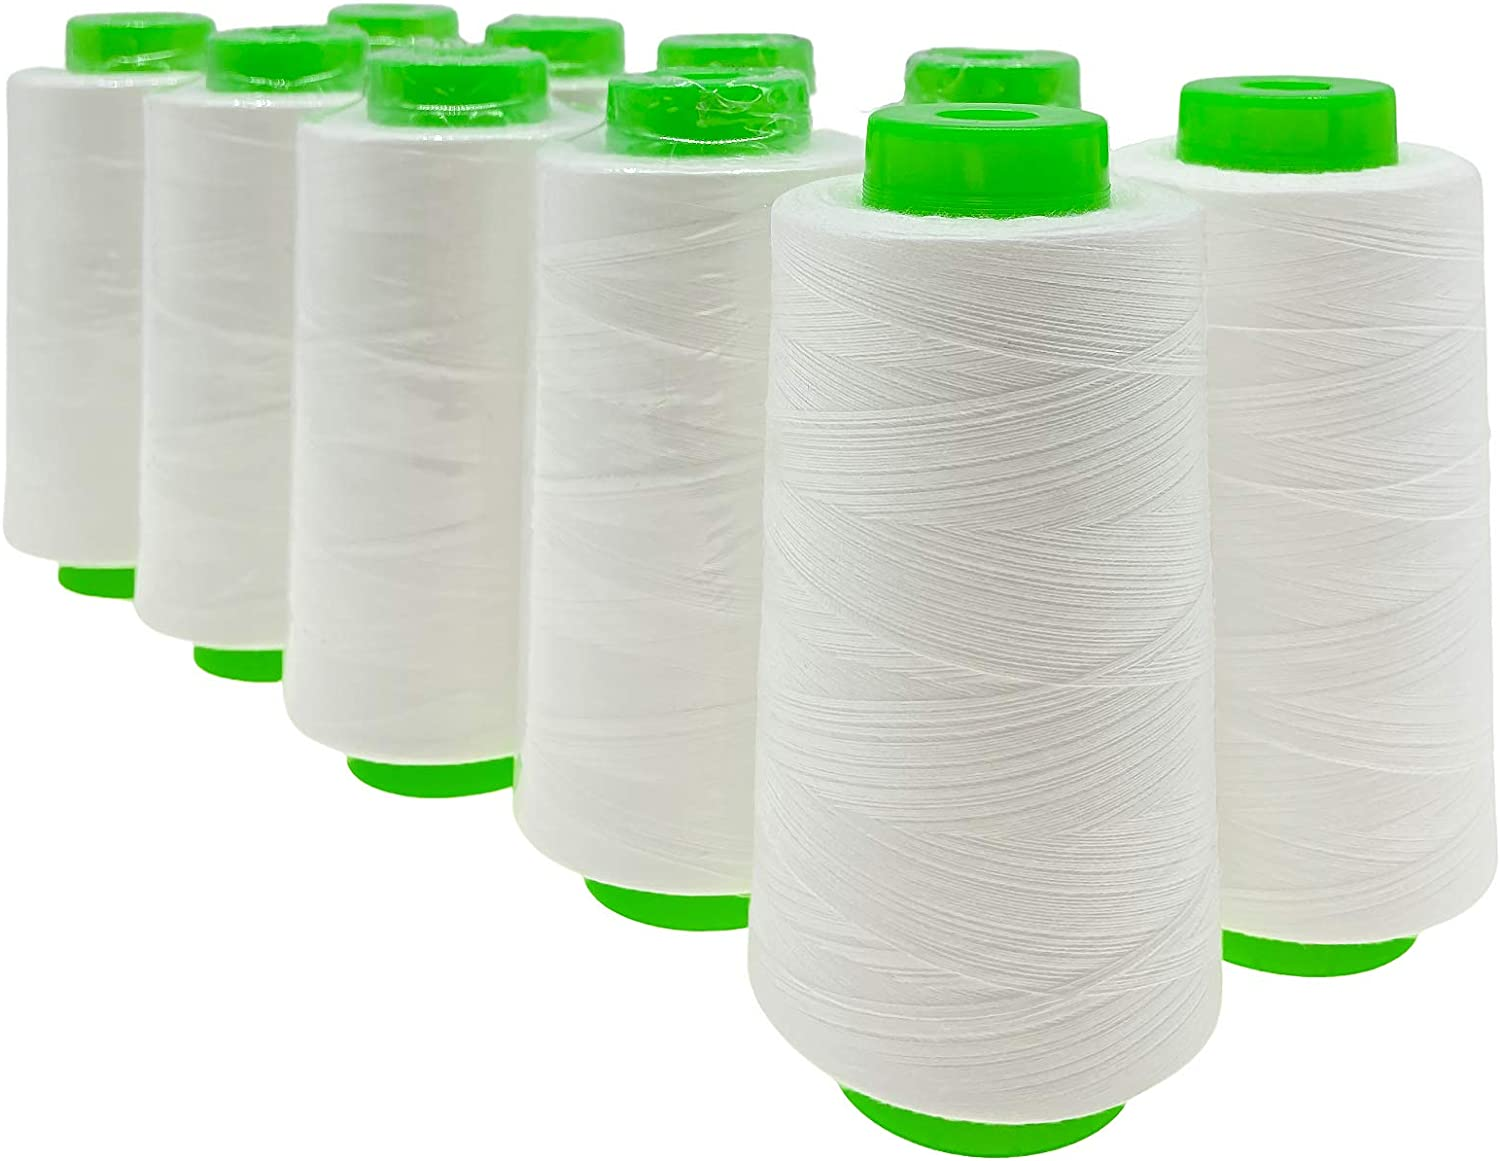 FAATCOI 12 X 3000 Yard Serger Thread Cones12 Spools of White Sewing Thread - 100% Polyester All Purpose Bobbins Set for Sewing Hand and Machine Quilting